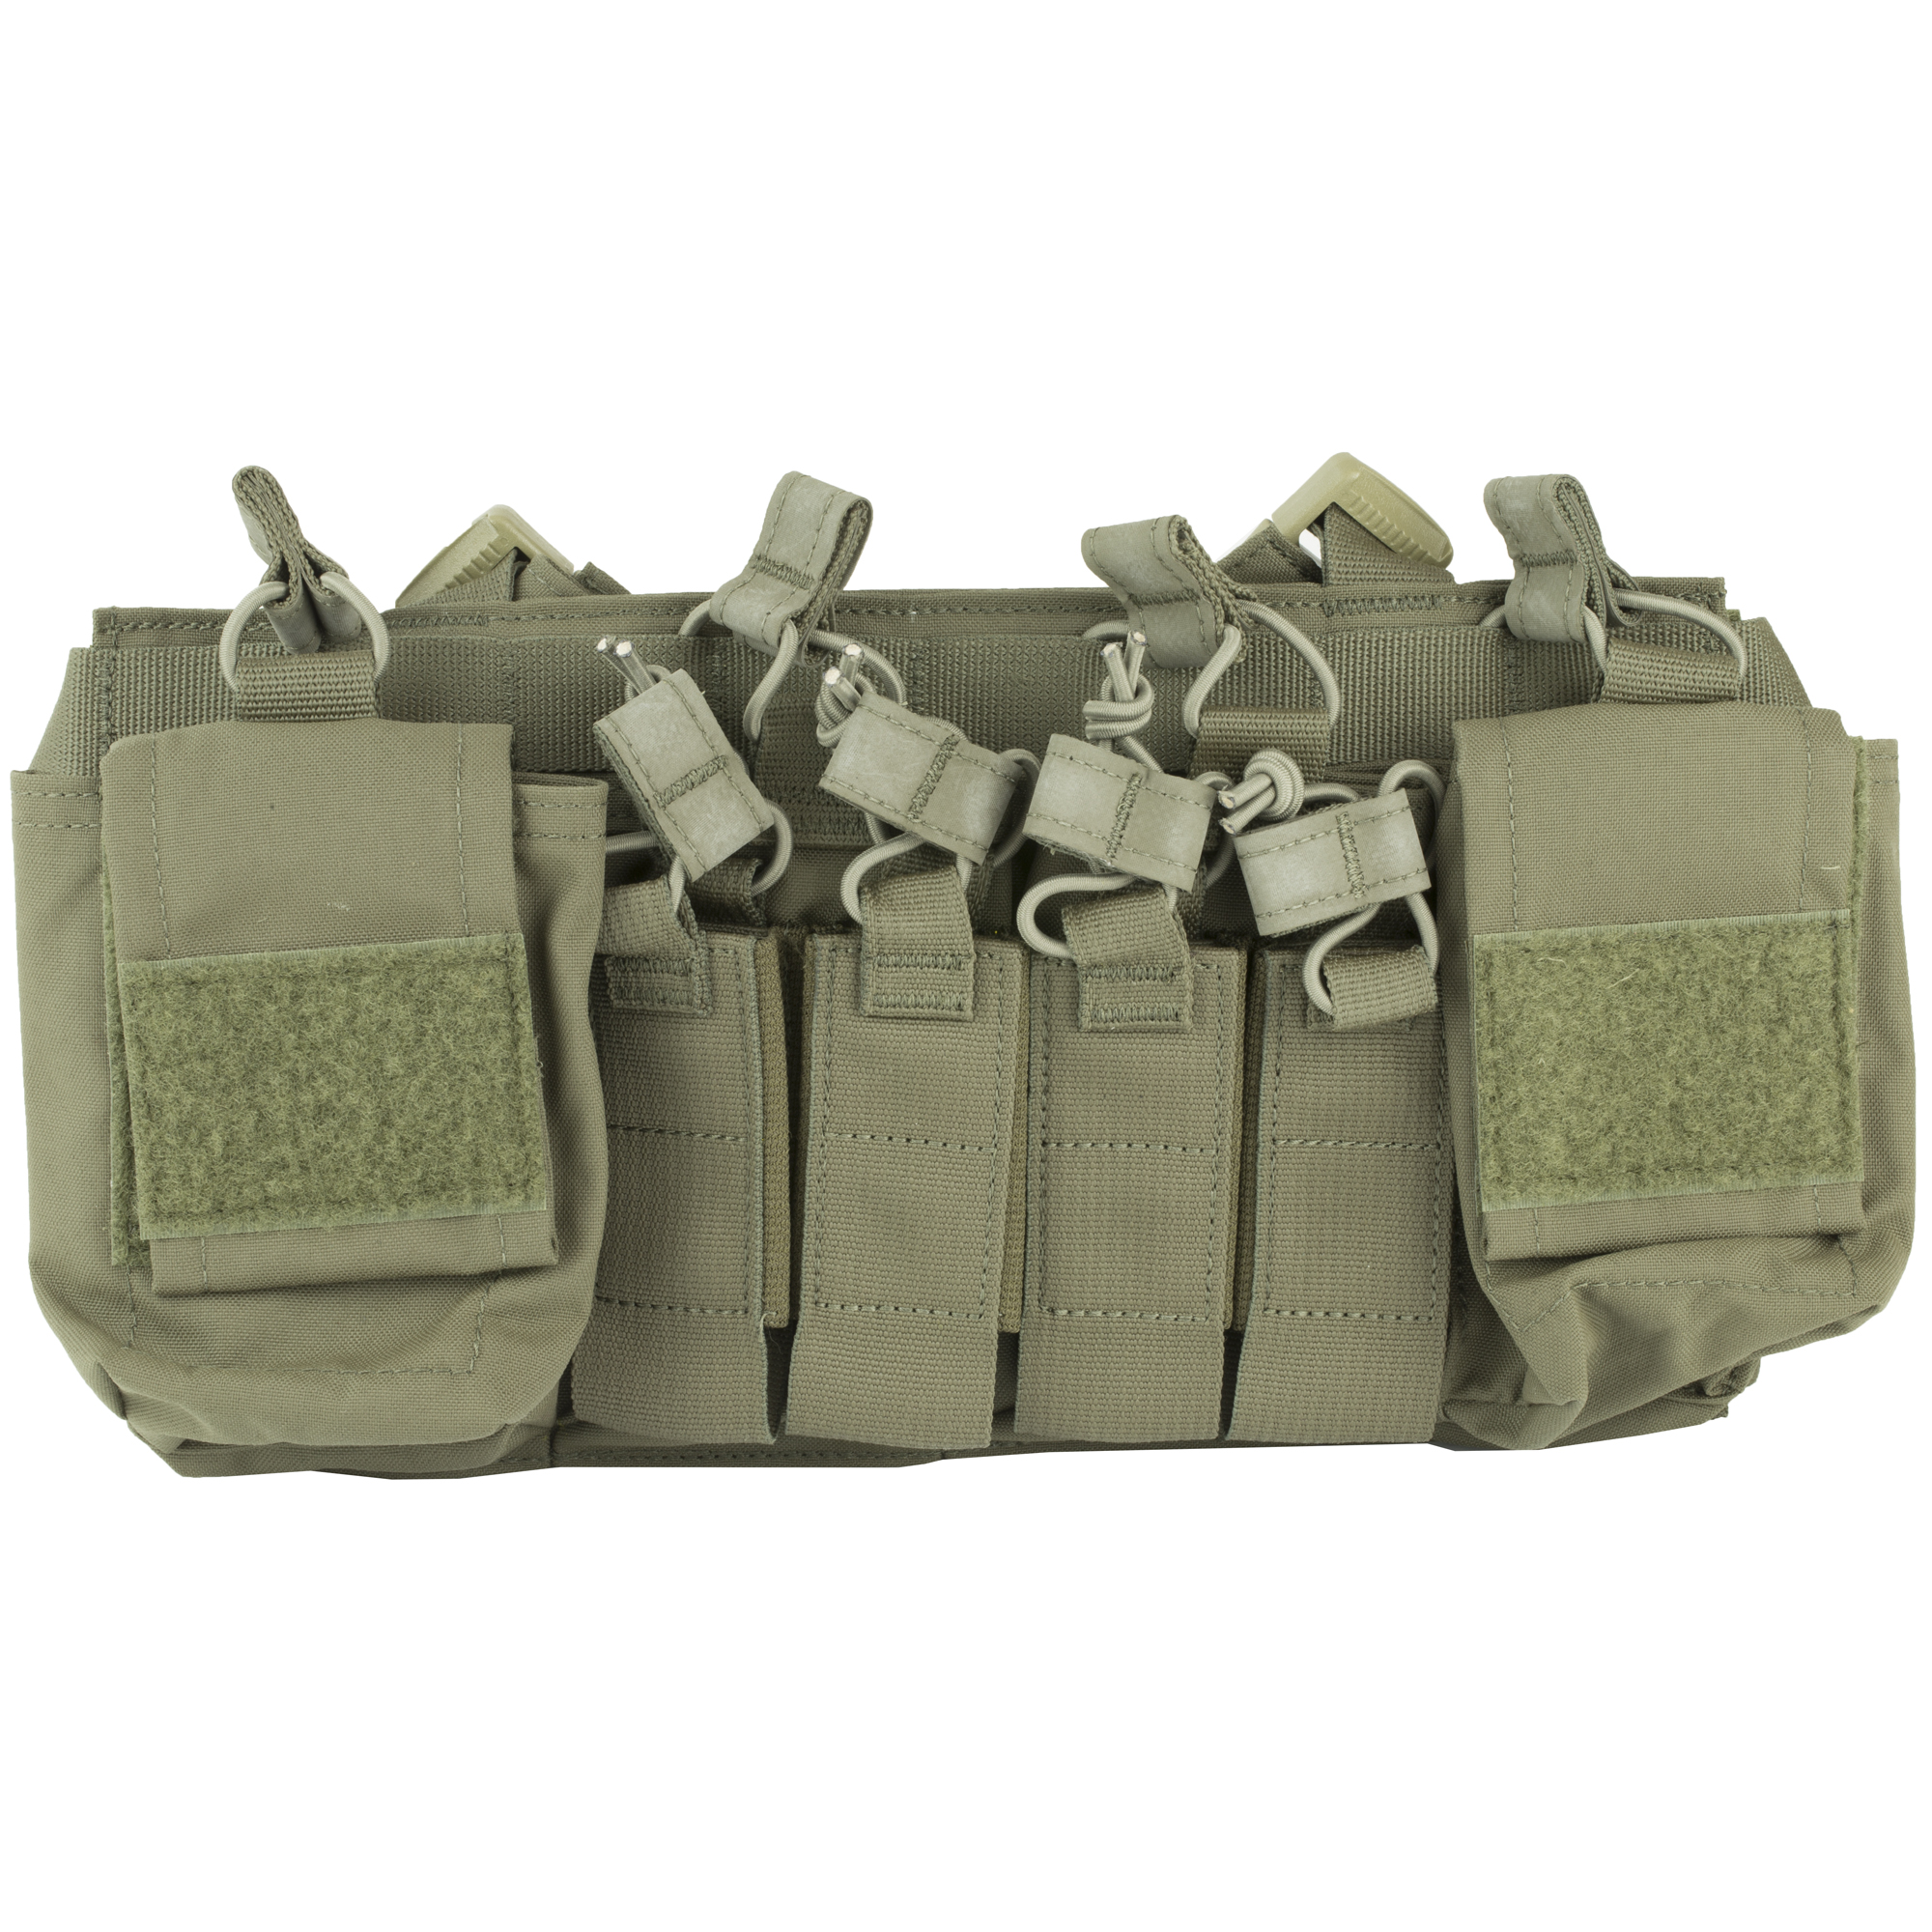 """The NEW Disruptive Environments Chest Rig X has been redesigned to improve comfort"""" storage capabilities and work seamlessly with D3CR accessories. The X harness was added for comfort and ultimate adjustability. The addition of 2 Multi-Mission pouches allows the rig to be more streamlined and carry mission essentials where they count. The full field of Velcro allows the rig to be outfitted with the latest D3CR accessories as well as assist in the full contact connection with plate carriers. Just like it's predecessor"""" it is designed and optimized for work in urban"""" vehicle"""" rural and other confined settings. When used as a stand alone"""" the platform is low profile enough to be worn fully loaded and not print on a normal/loose fit jacket or sweatshirt. When used on a armor platform with a quick release system"""" such as SwiftClips"""" it can be attached or stowed in seconds"""" giving the end user the versatility to transition from low vis to high vis or vice versa."""